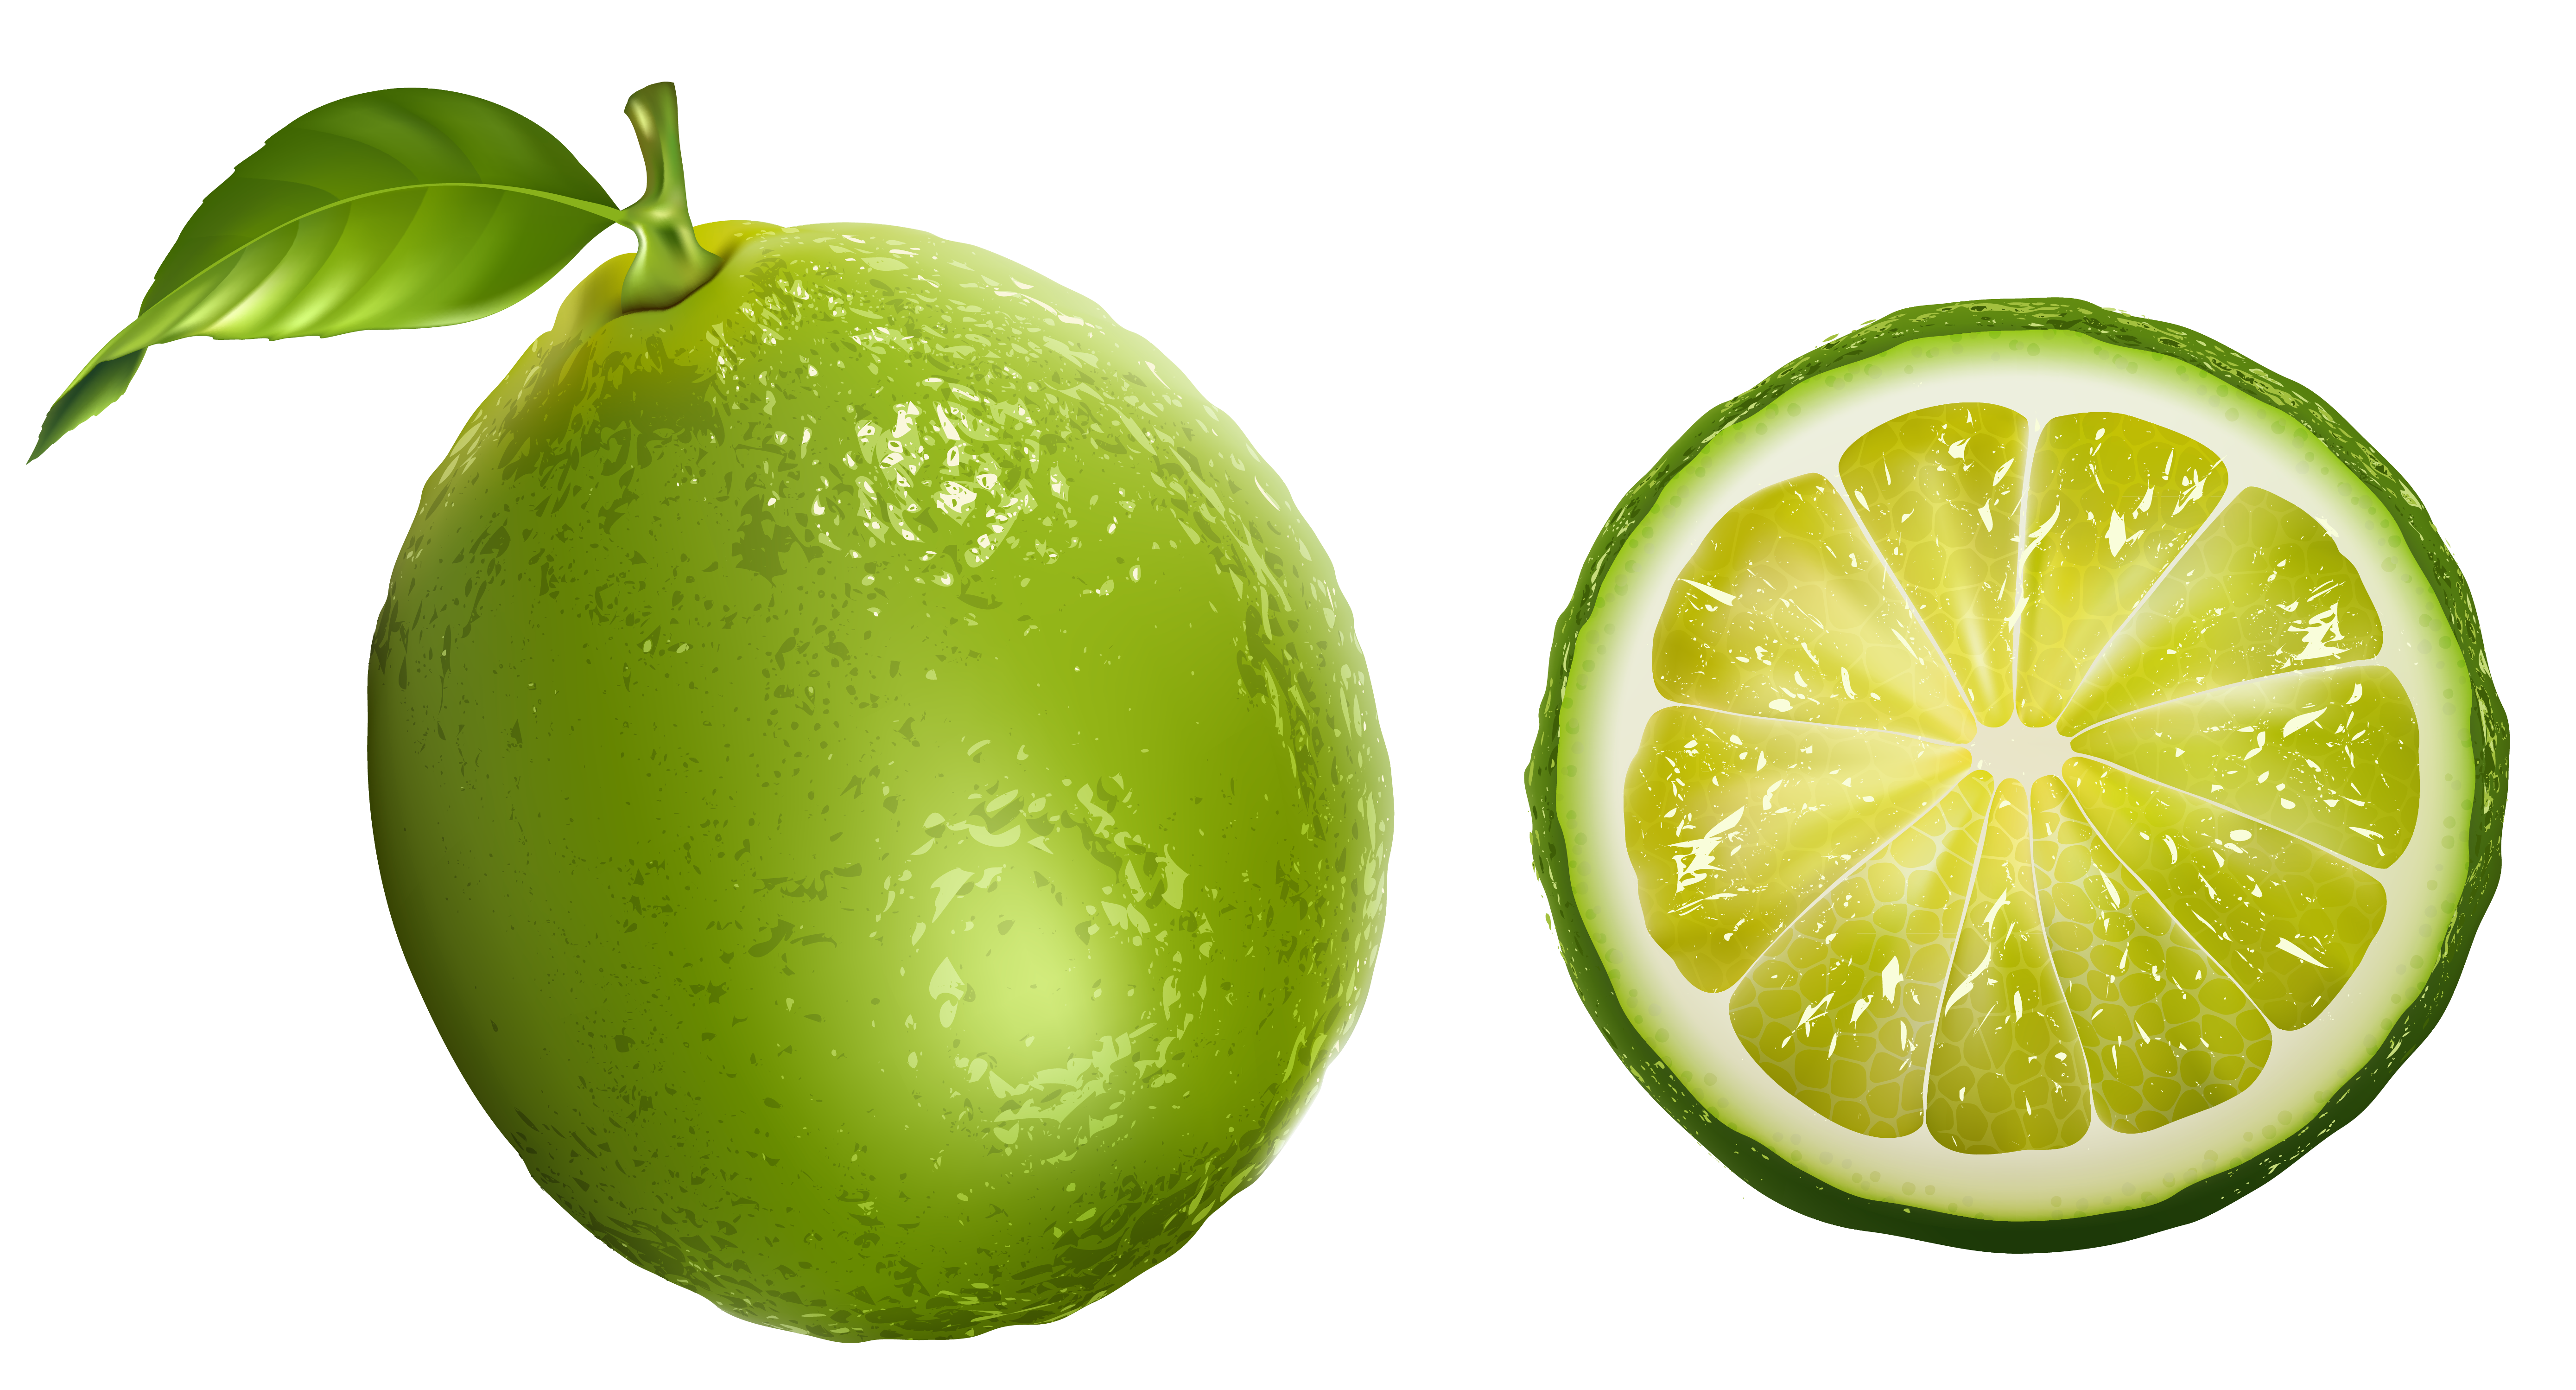 Lemon drink persian clip. Lemons clipart lime